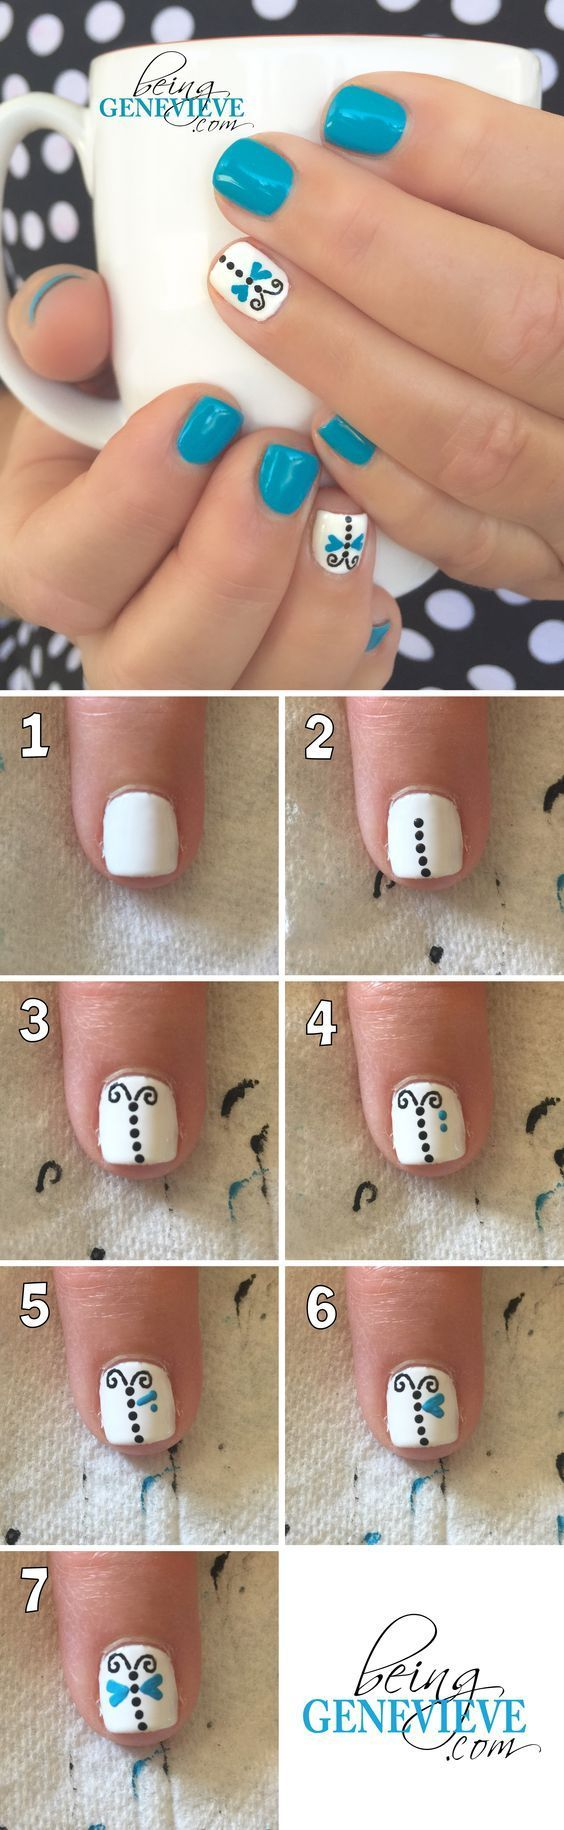 Dainty Dragonflyl   Step-by-step tutorial on how to create this dainty dragonfly nail art design. This is the perfect manicure for any summer nail design. . .: